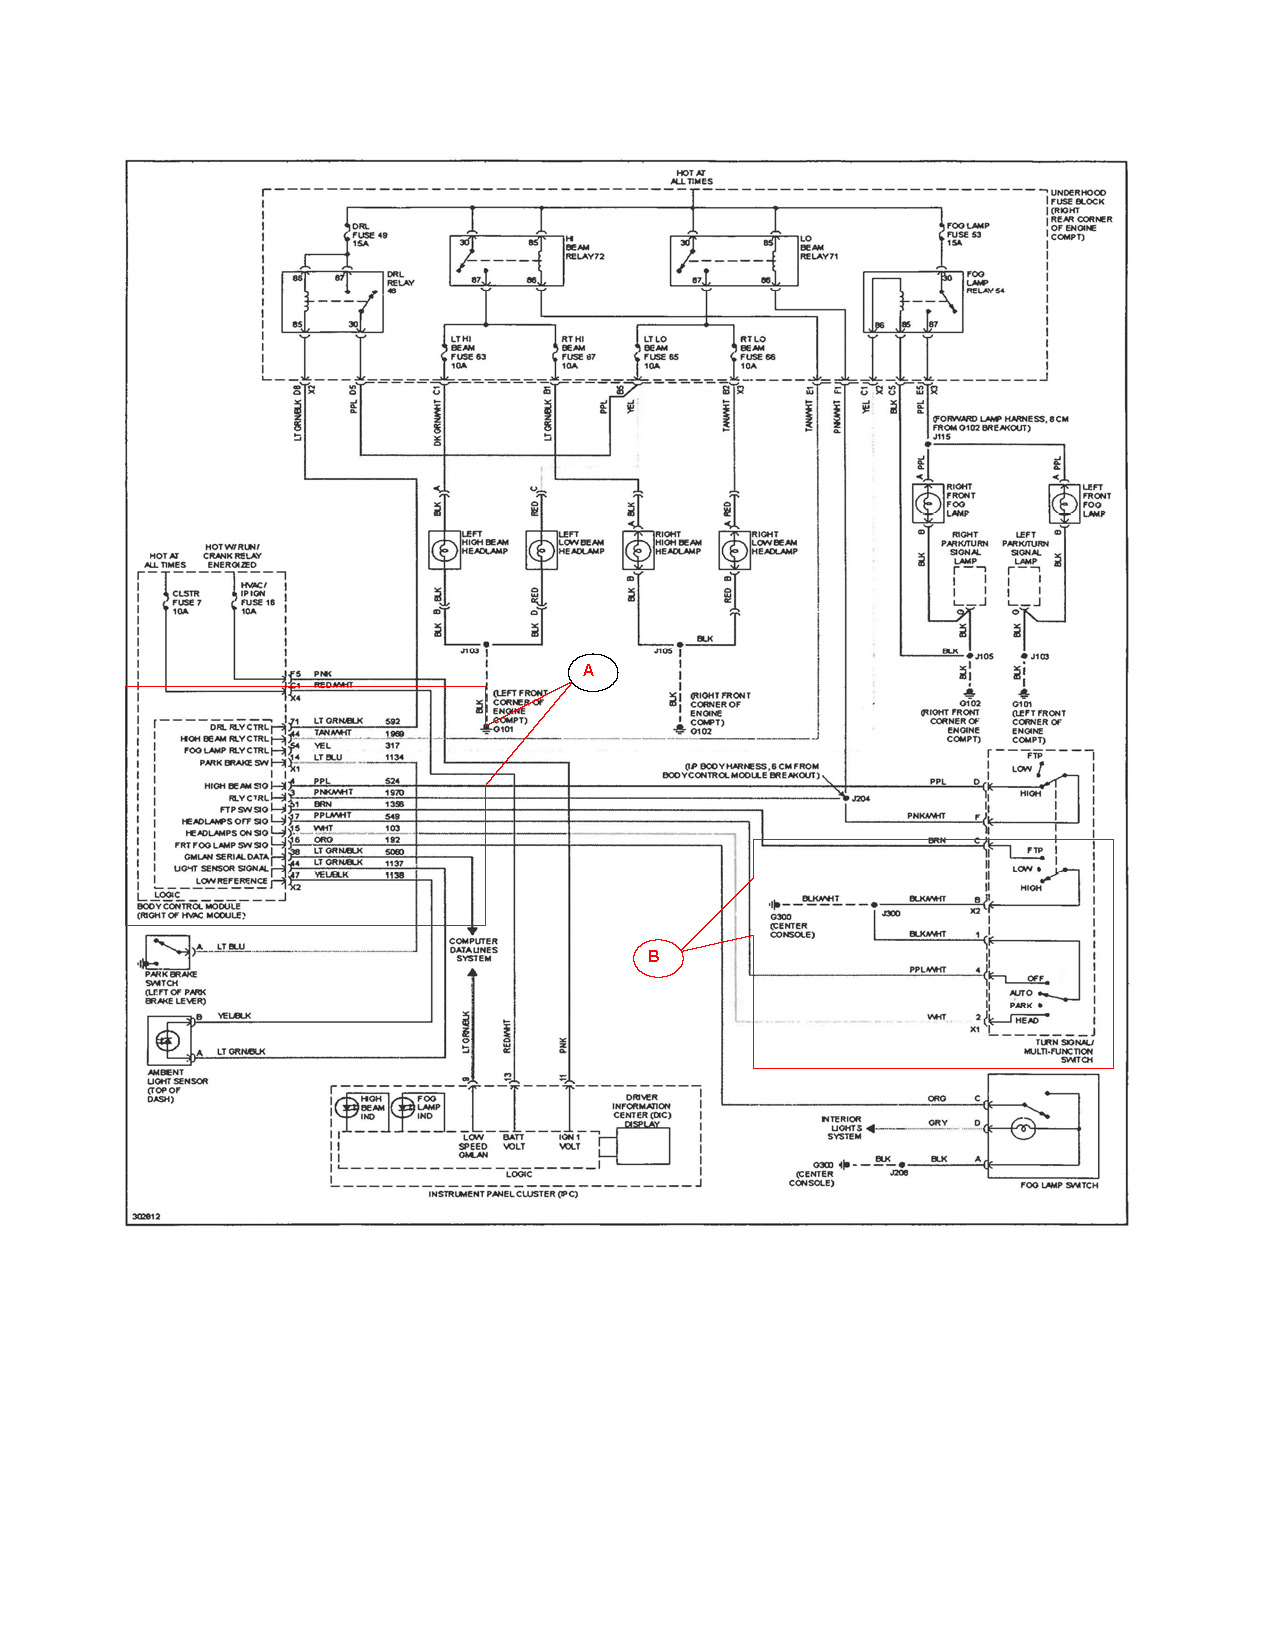 hight resolution of 2009 saturn sky fuse diagram schematic diagrams rh ogmconsulting co 2001 saturn fuse diagram saturn sl2